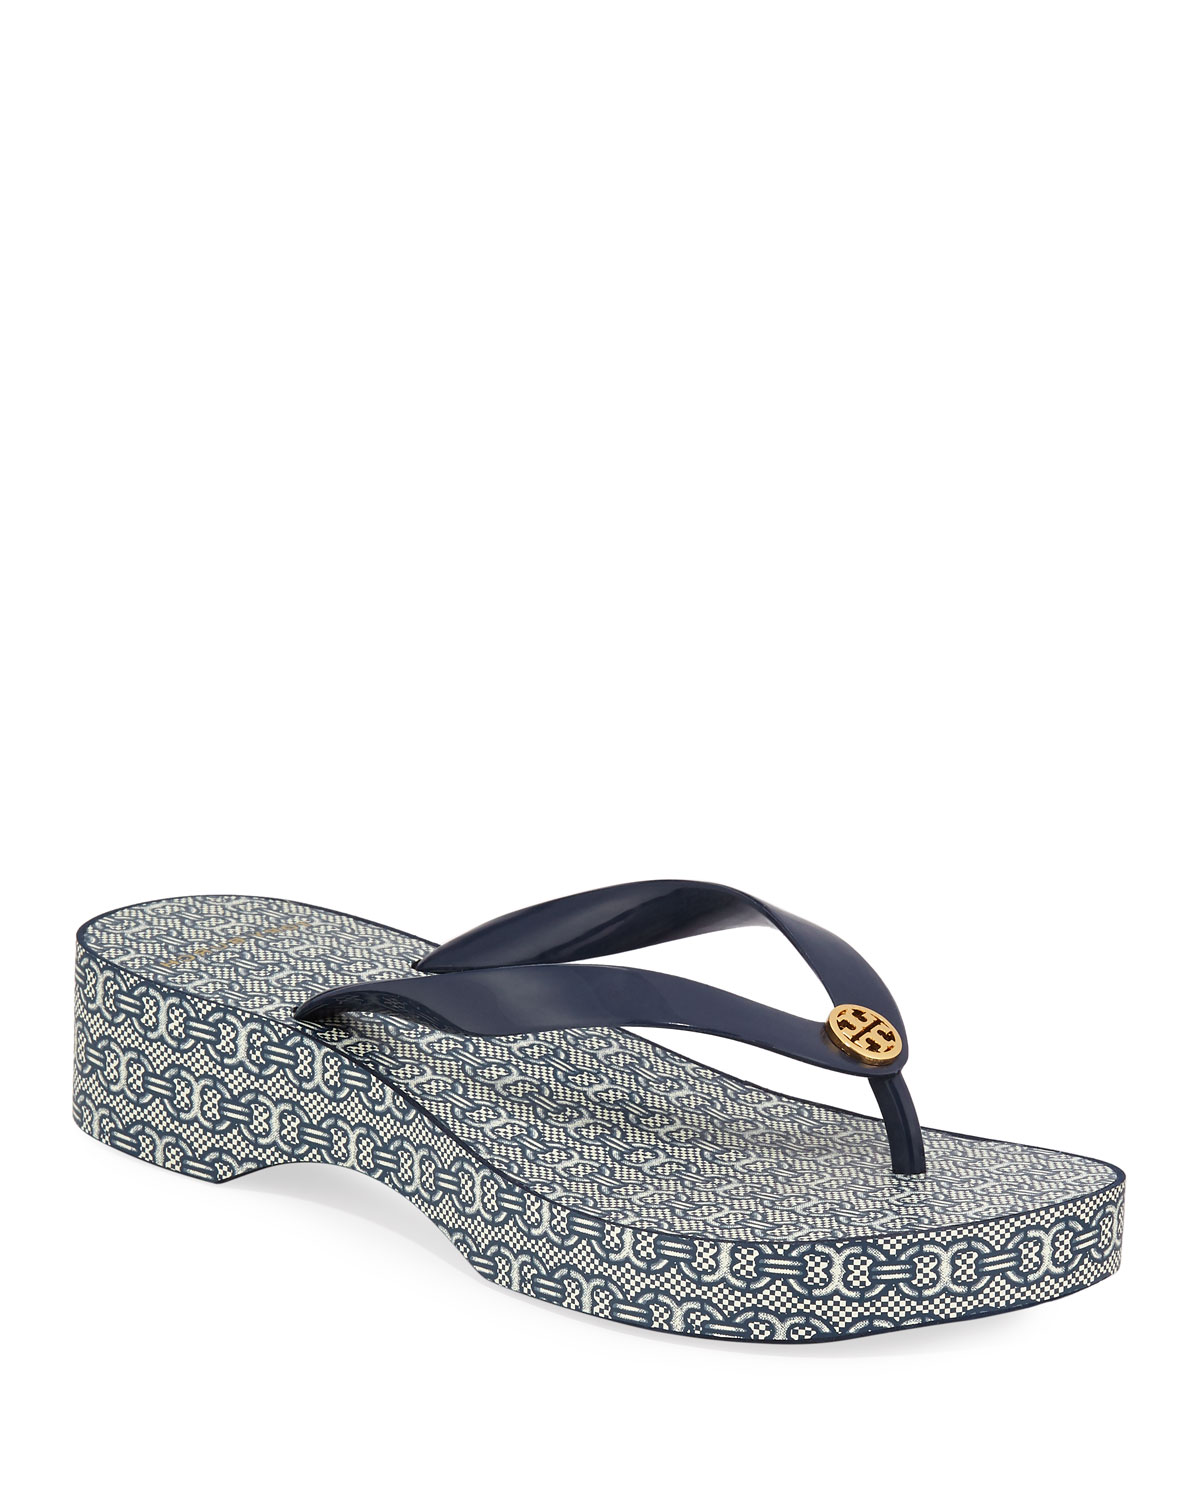 3db23e6572c3 Tory Burch Cutout Wedge Flip-Flop Sandals